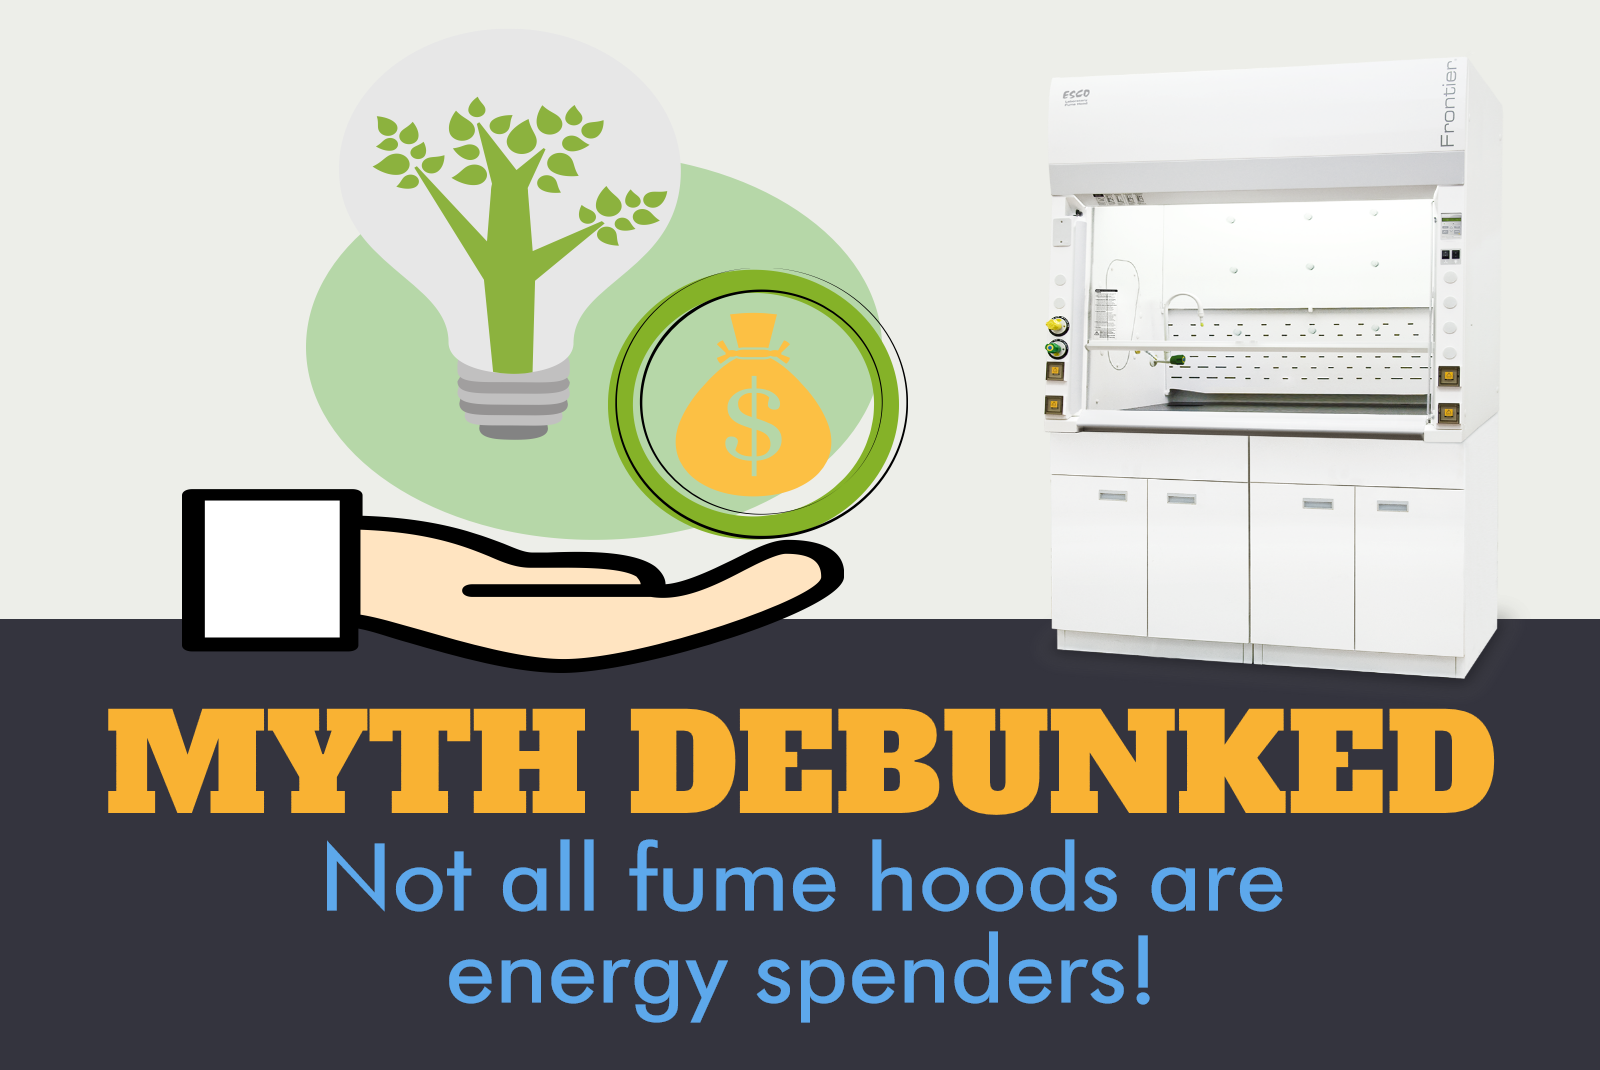 Myth debunked: Not all fume hoods are energy spenders!